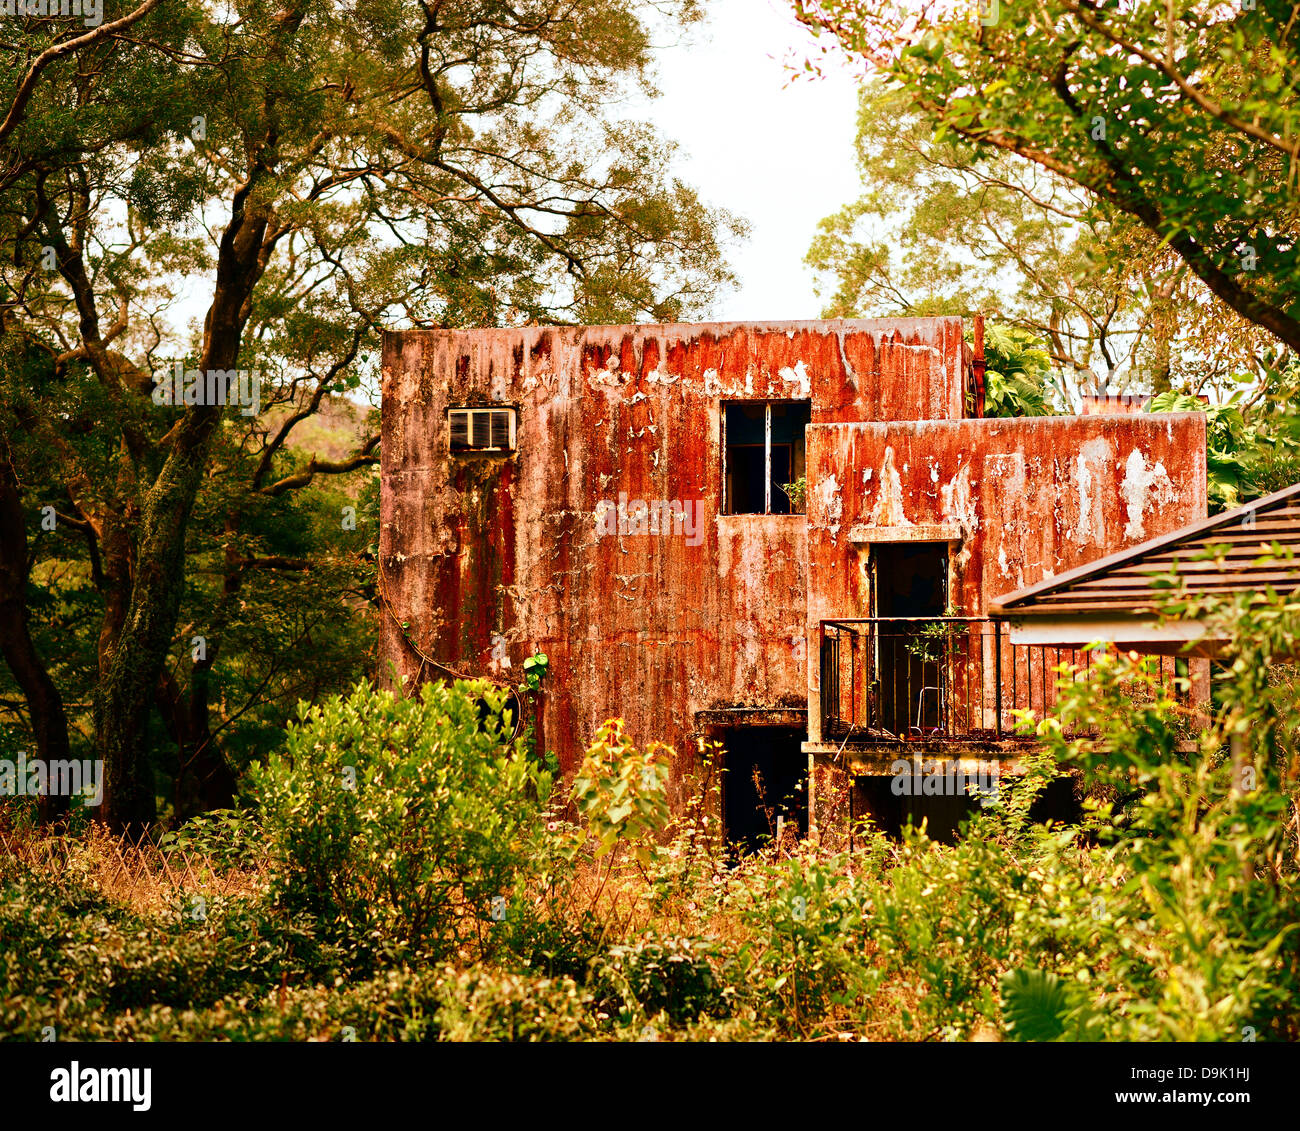 Old gritty abandoned home on Lantau Island in Hong Kong. Stock Photo